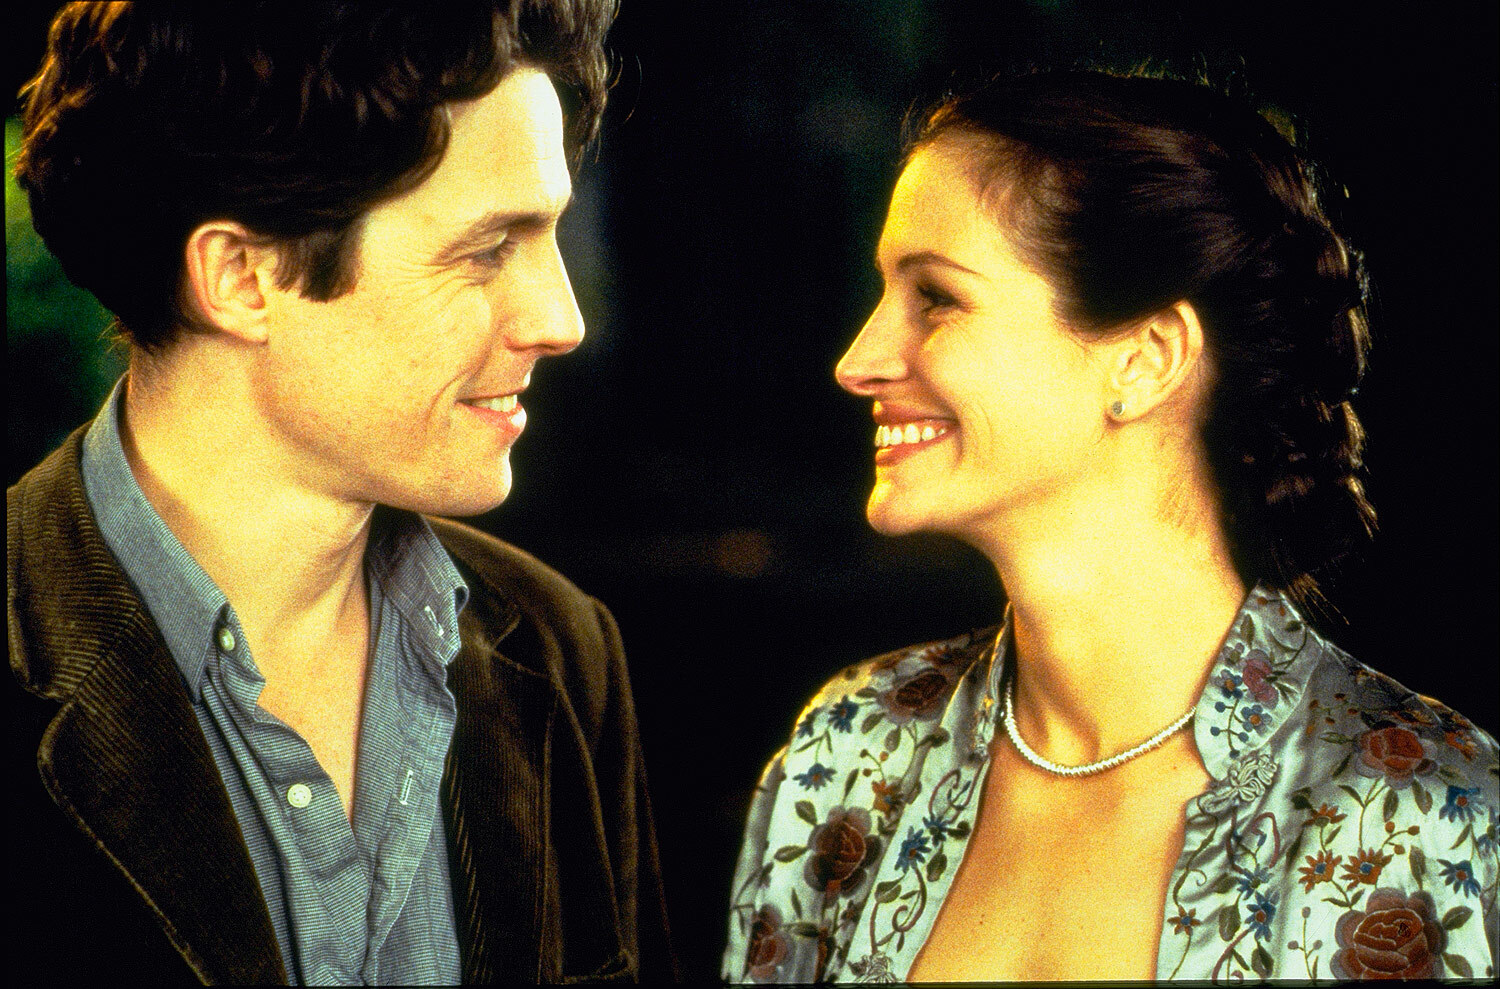 Julia Roberts and Huge Grant in the film 'Notting Hill'